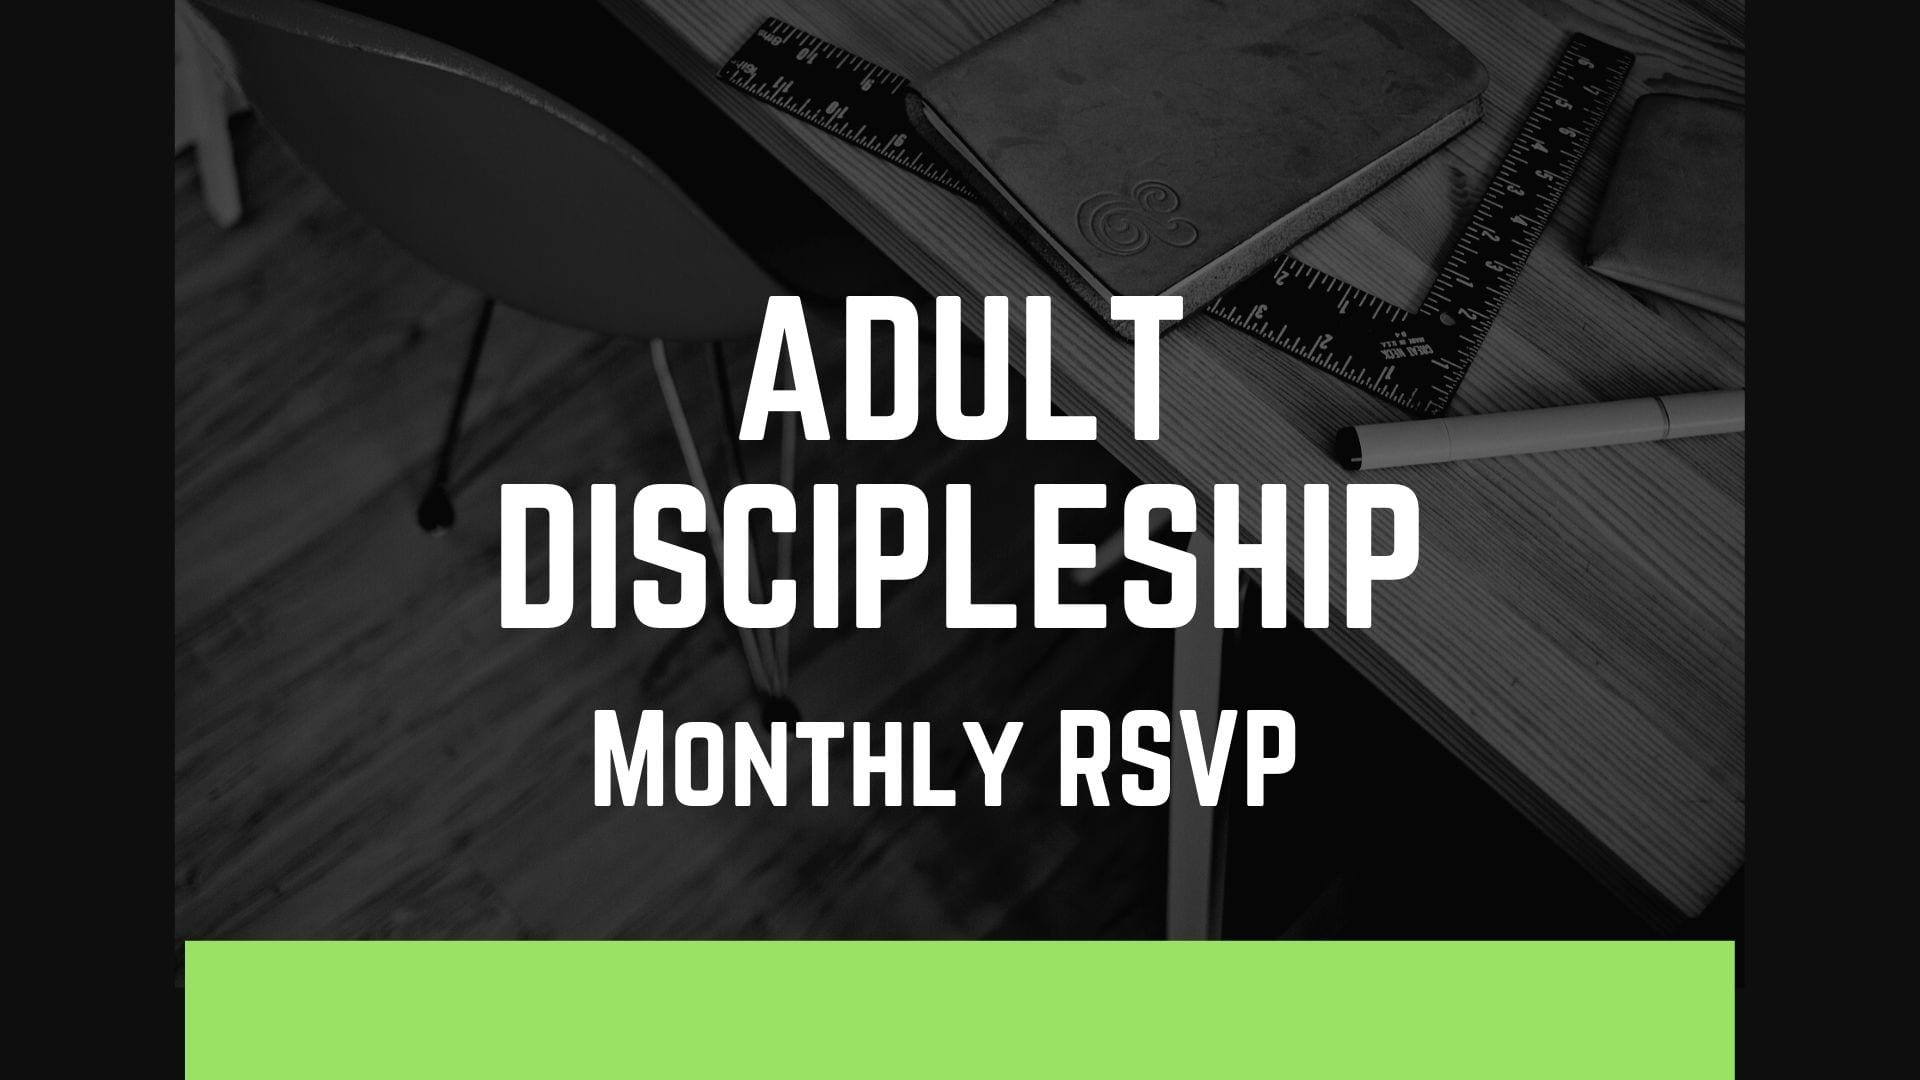 Adult Discipleship Monthly RSVP